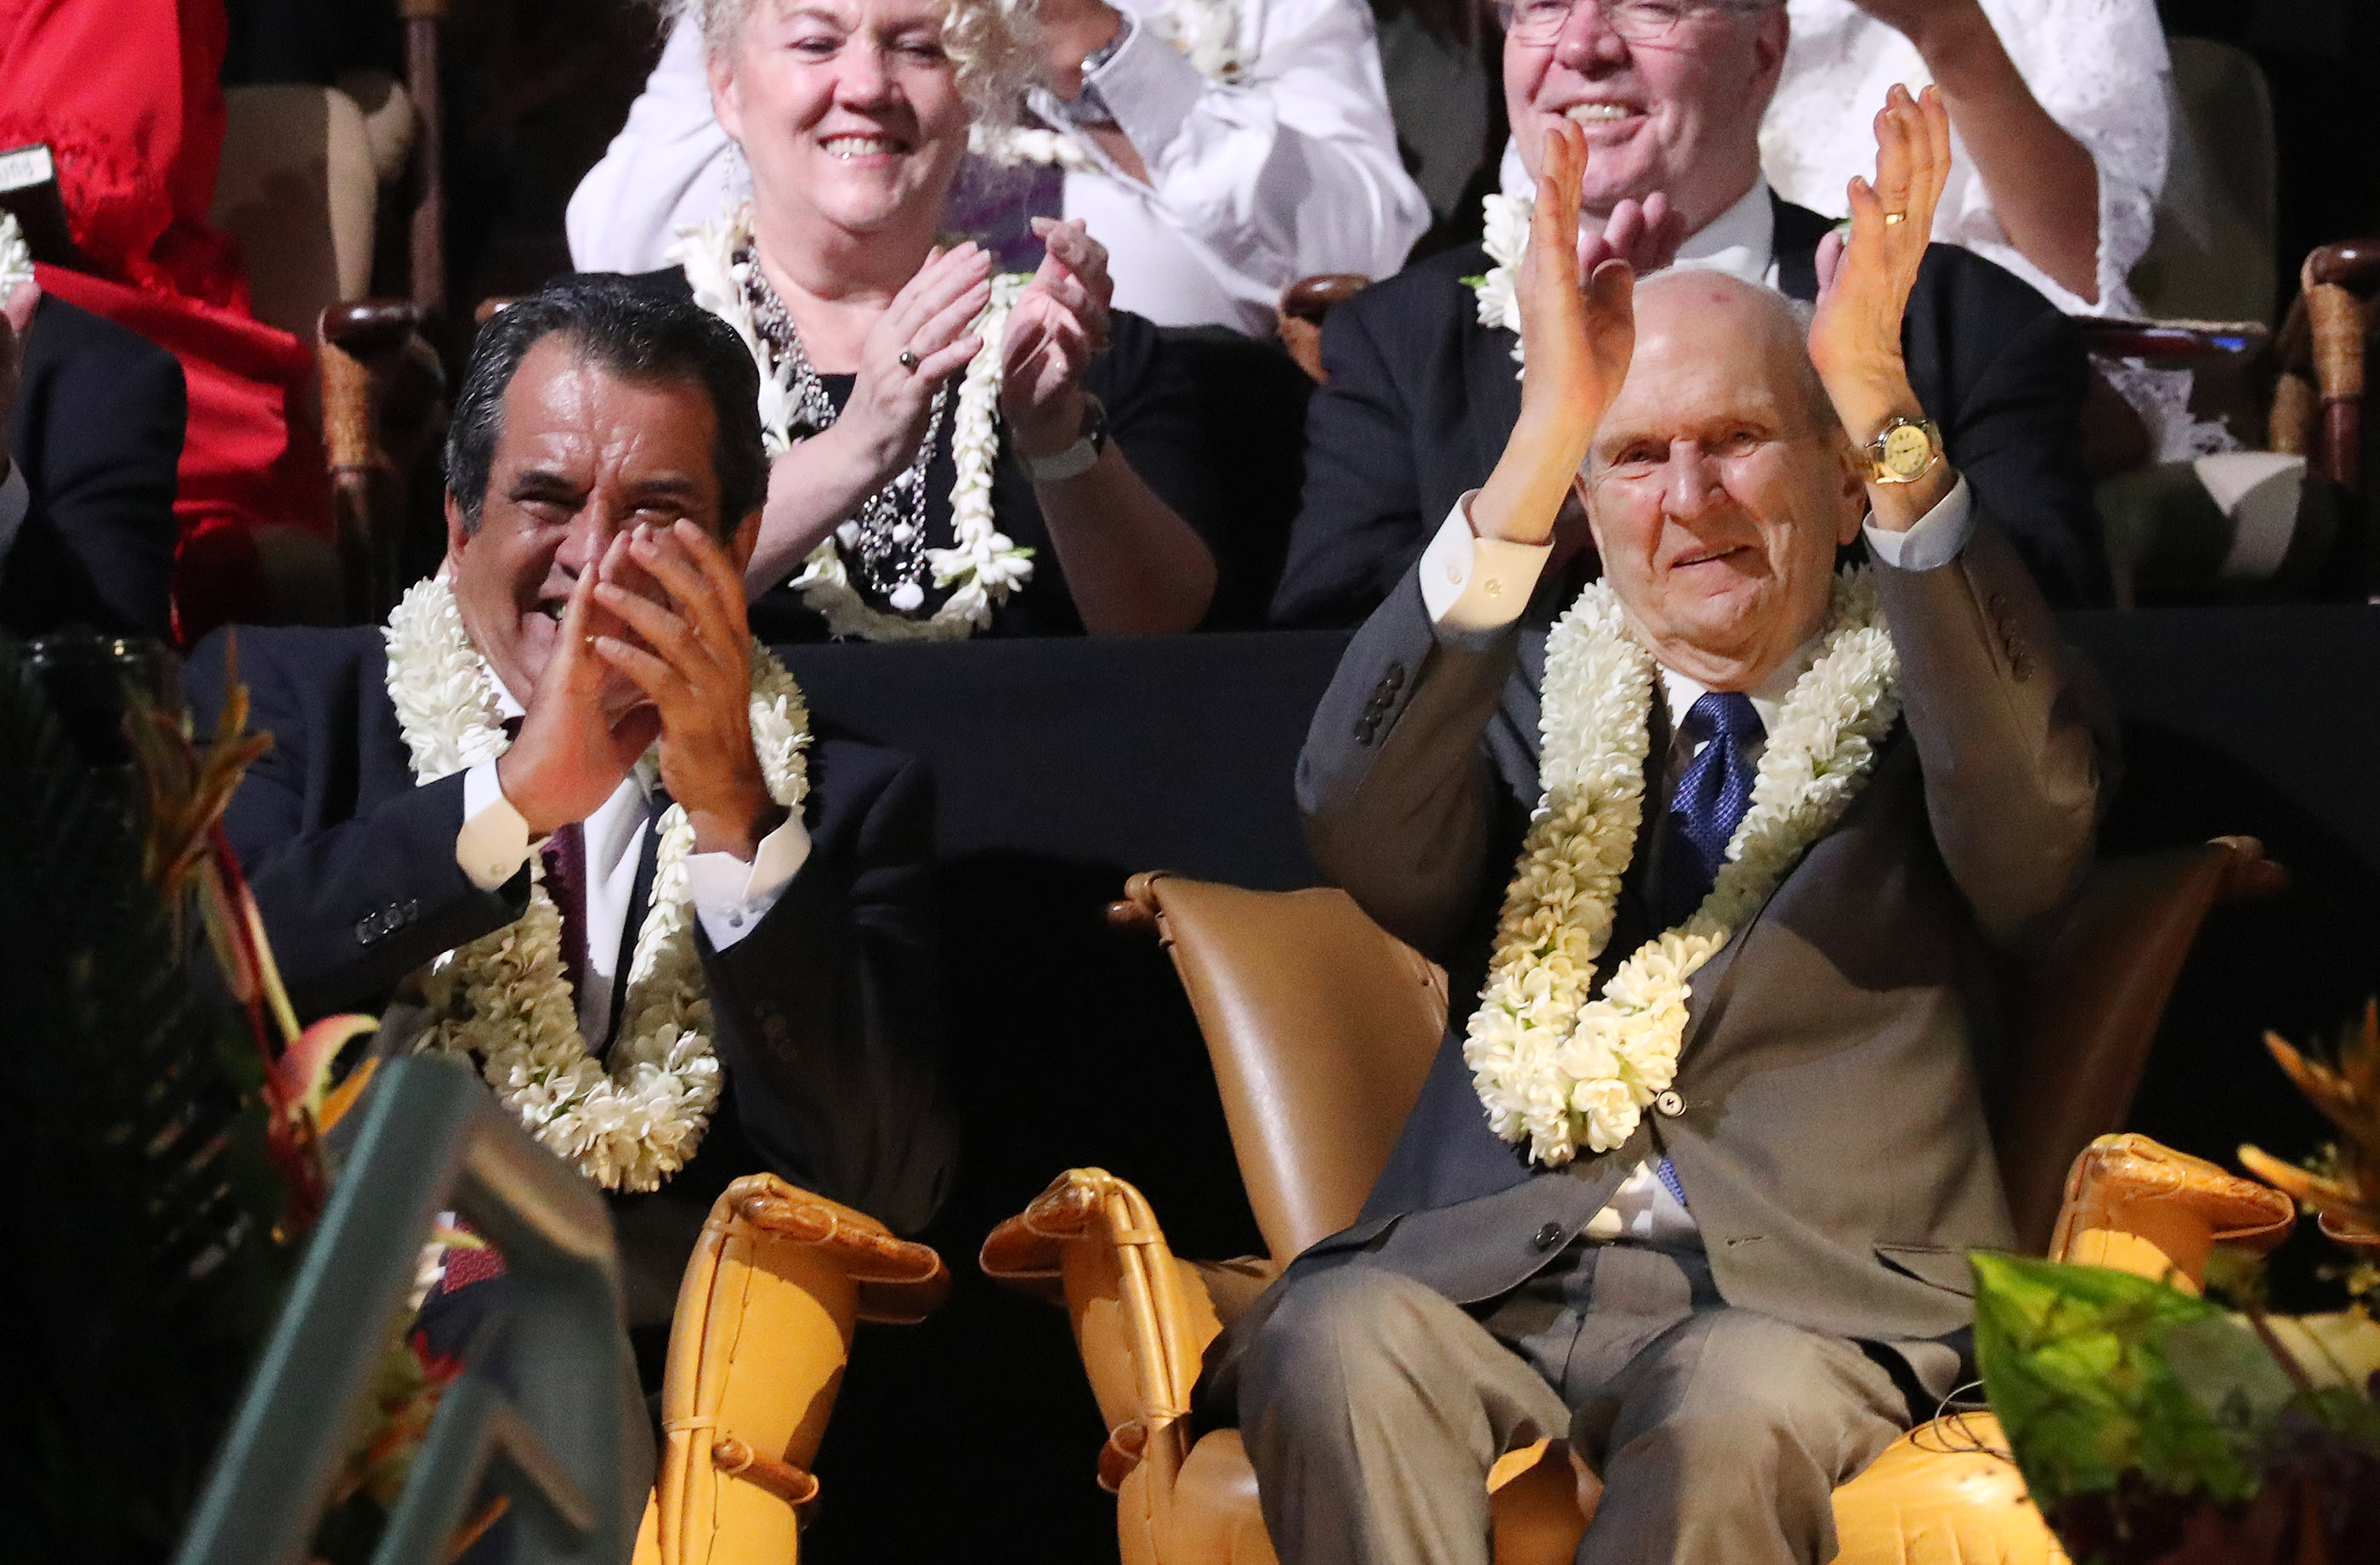 President Russell M. Nelson of The Church of Jesus Christ of Latter-day Saints, right, and French Polynesia President Edouard Fritch applaud performers during a Tahiti cultural program in Papeete, Tahiti, on May 24, 2019.